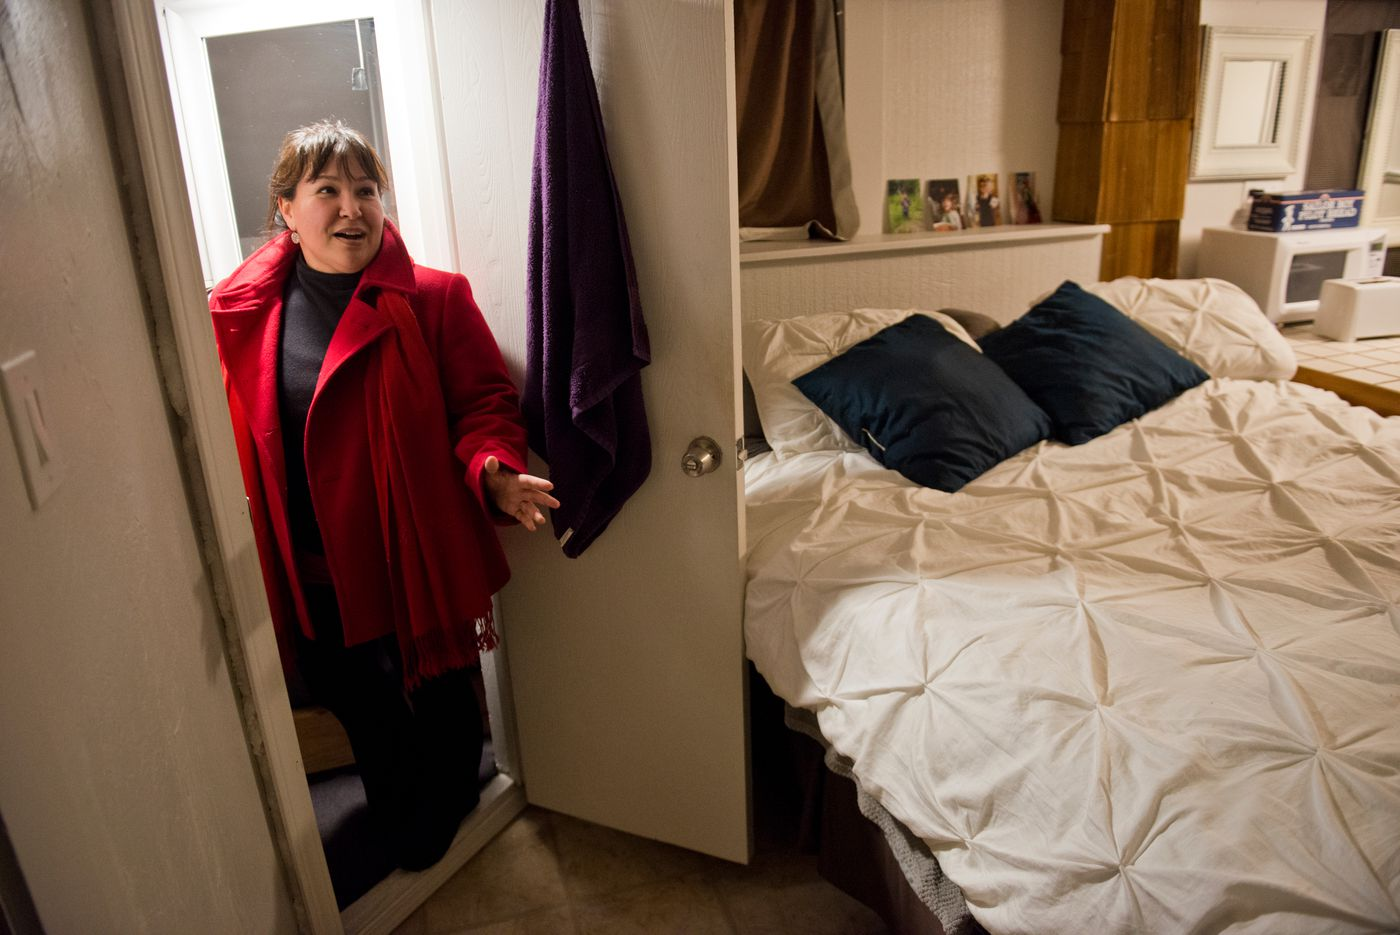 Michelle Sparck, an aide for Rep. Zach Fansler of Bethel, said the basement apartment she rents has just one room and a very tiny bathroom, but she was thrilled to find it after looking at some less appealing options in Juneau. (Marc Lester / Alaska Dispatch News)